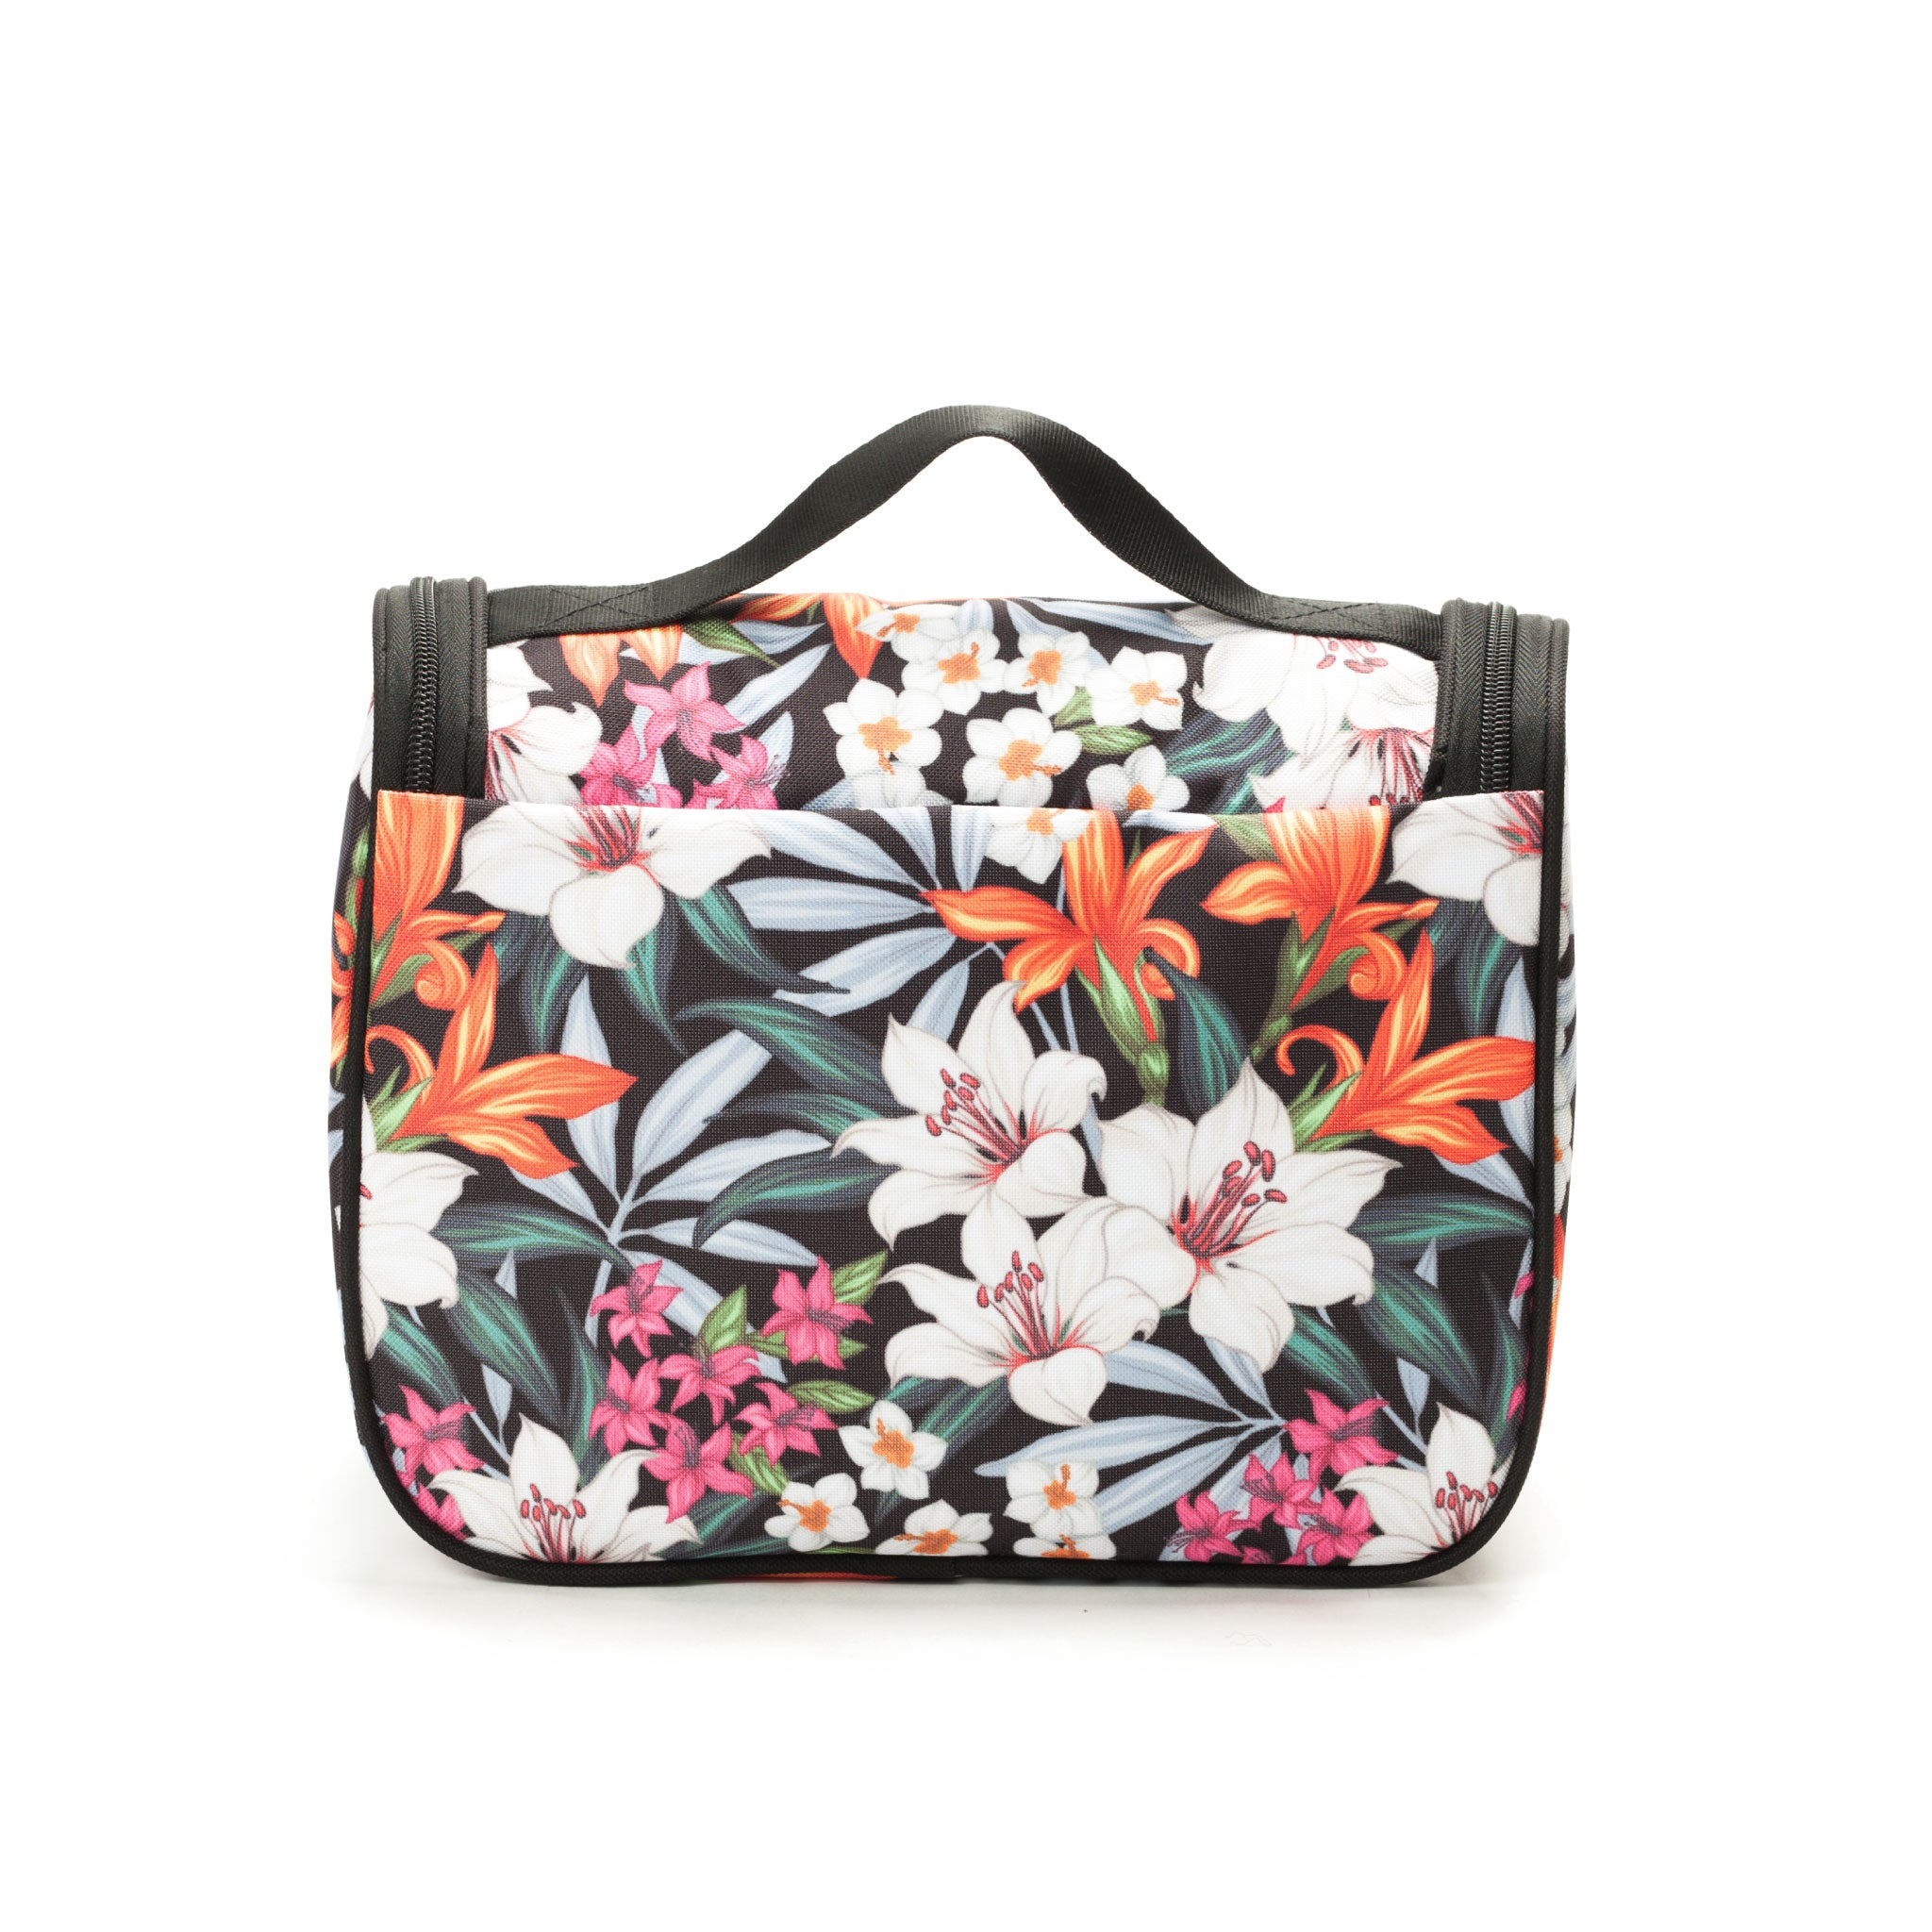 Hanging Toiletry Bag - Tropical Vintage